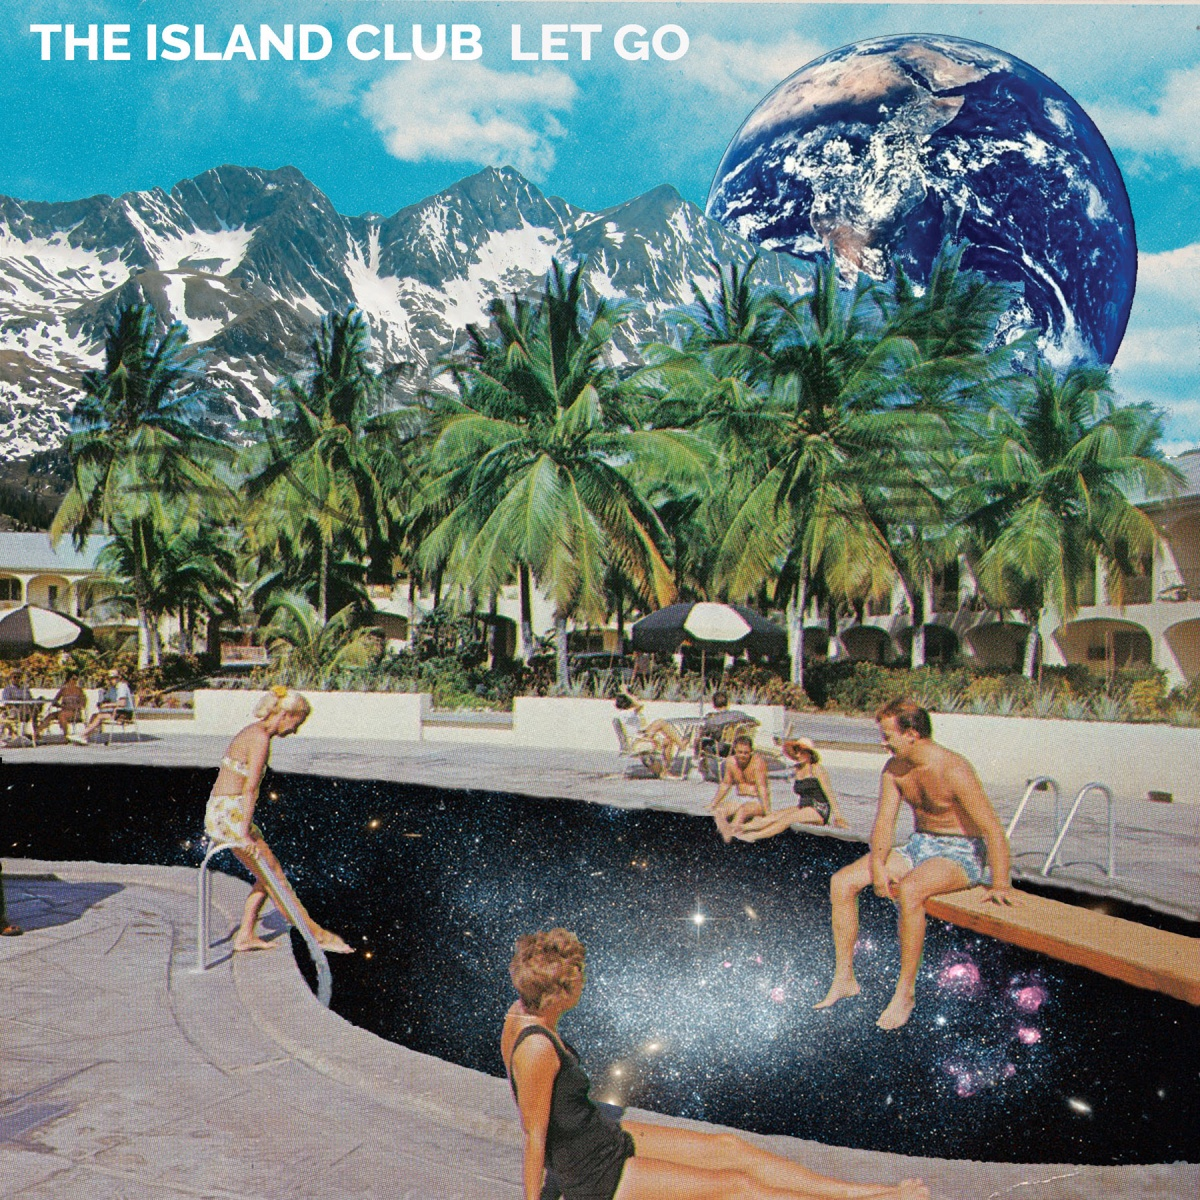 THE ISLAND CLUB Drop Kaleidoscopic Video For 'LET GO'